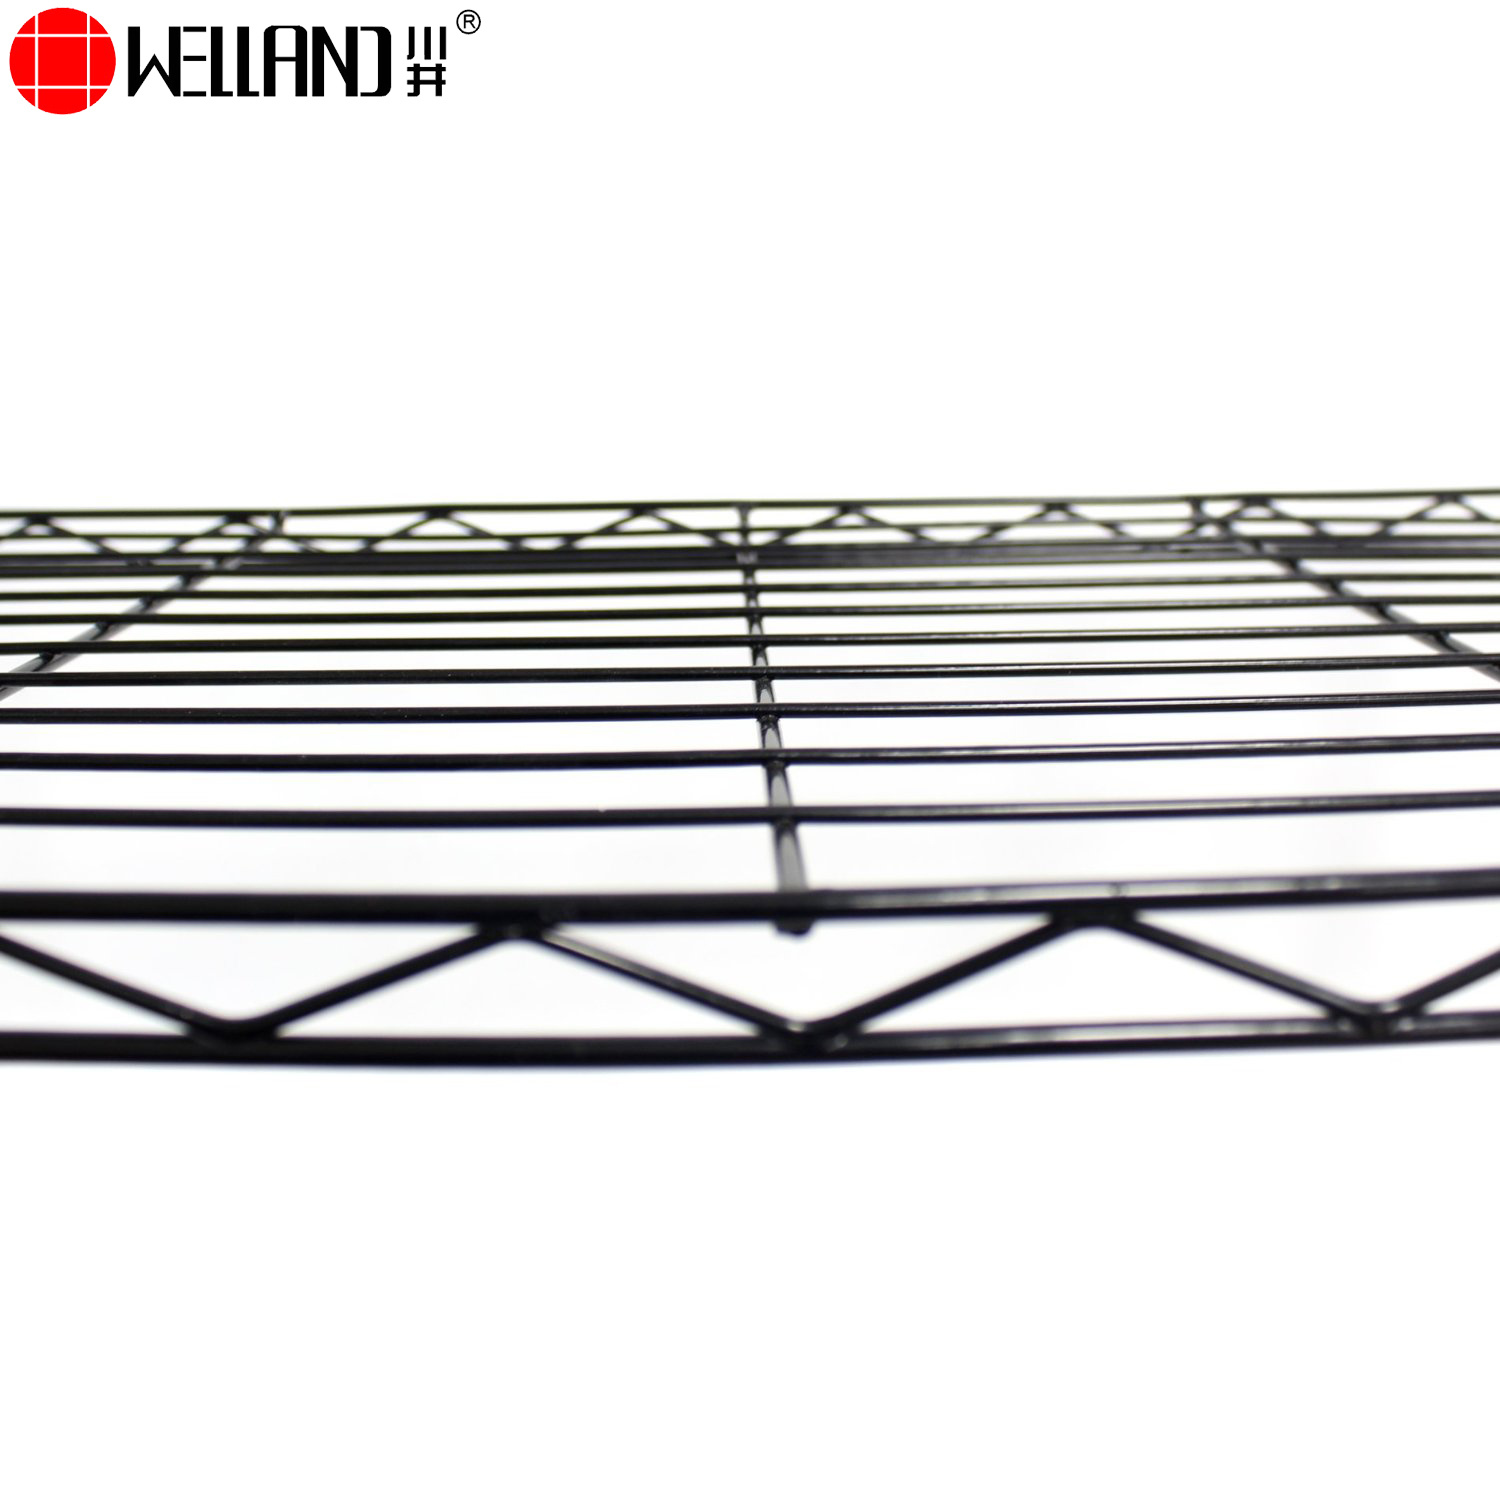 China Black Powcder Coated Metal Wire Shelving 5 Tier Adjustable ...